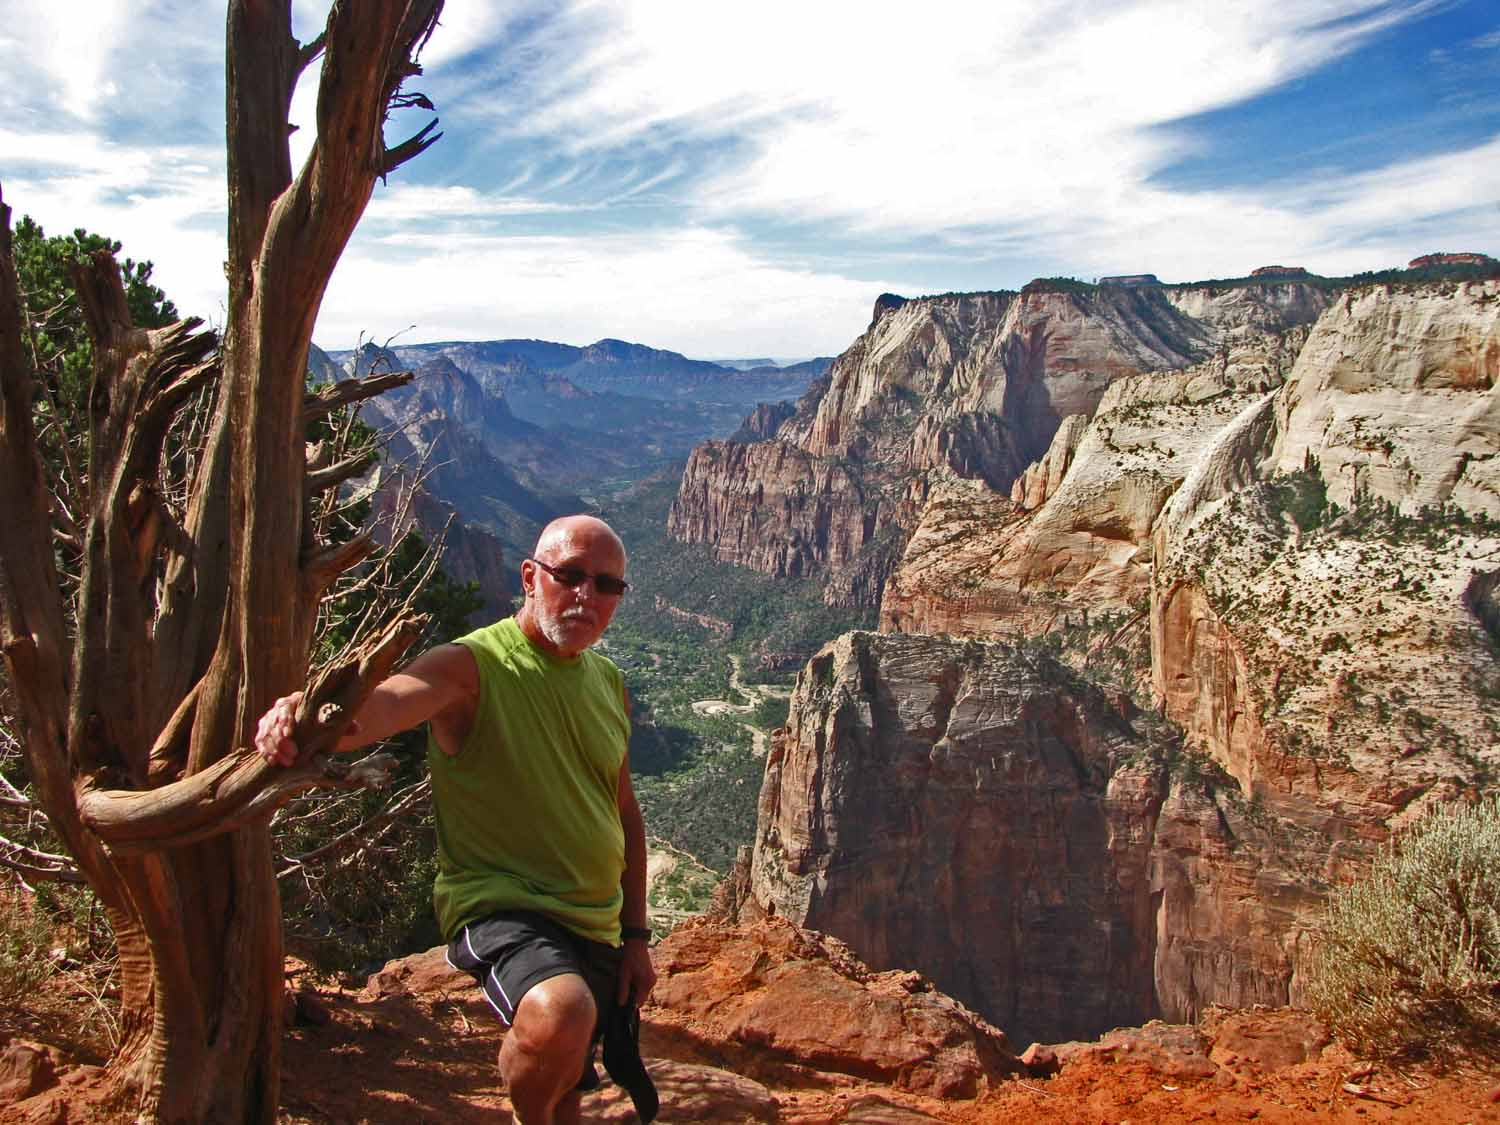 Larry on Zion Inspiration Point...had lunch and ready to head back down the trail